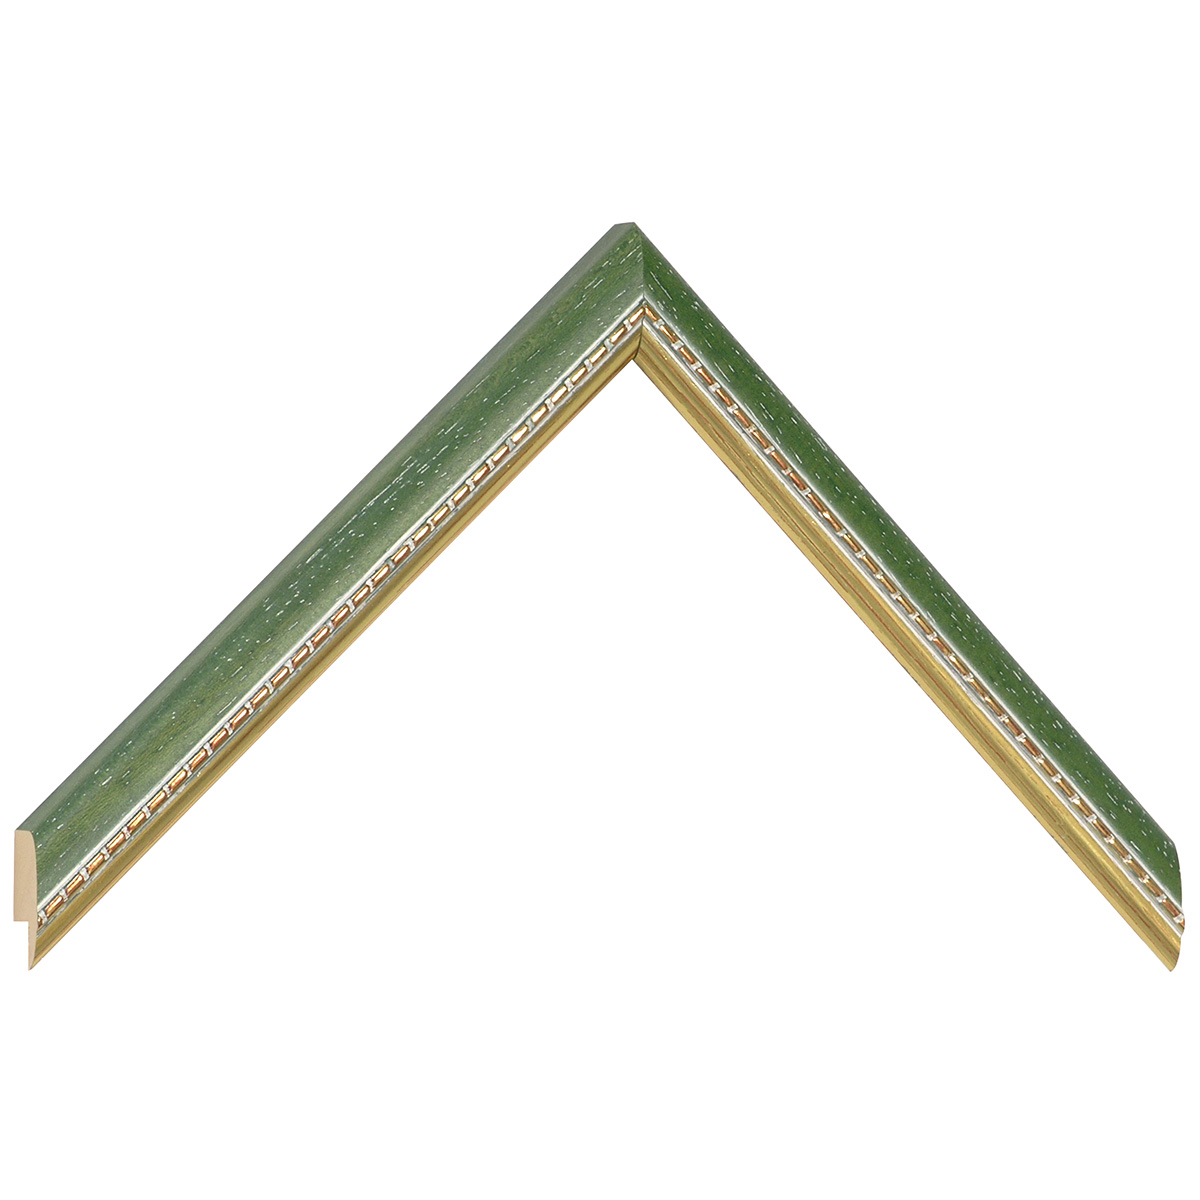 Moulding ayous 17mm - green, gold decorative relief